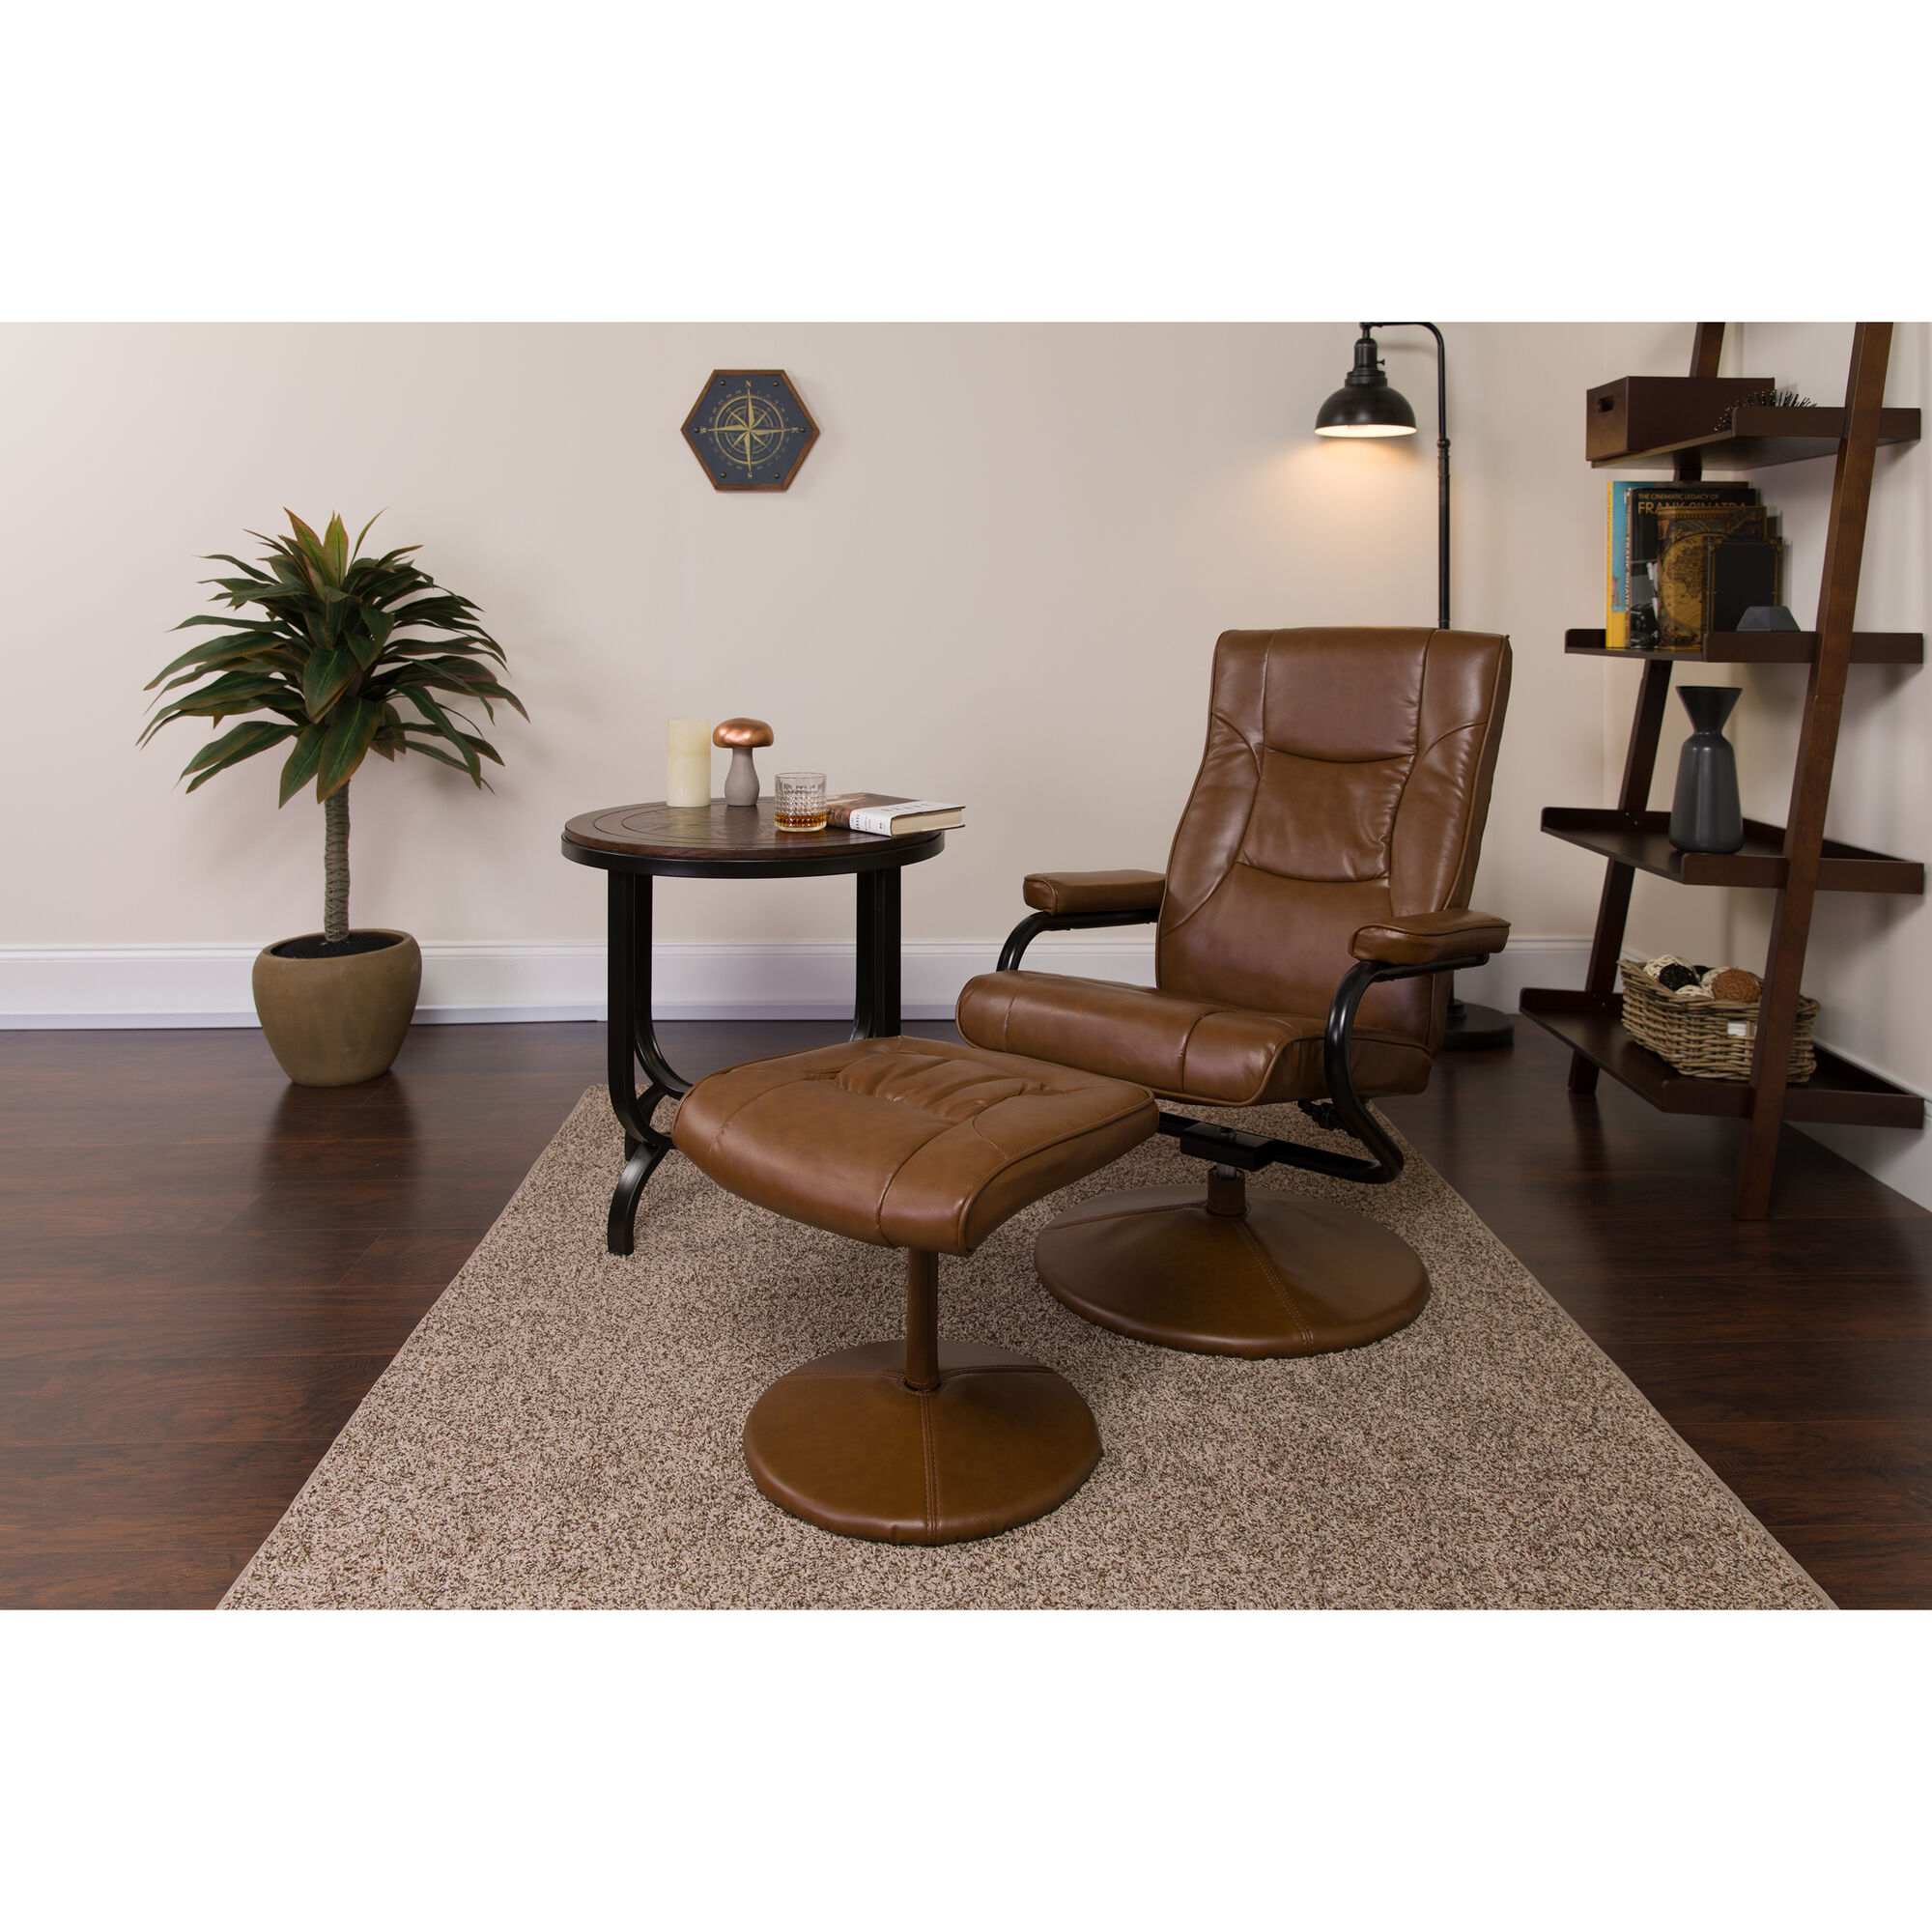 Miraculous Contemporary Multi Position Recliner And Ottoman With Wrapped Base In Palimino Leather Dailytribune Chair Design For Home Dailytribuneorg